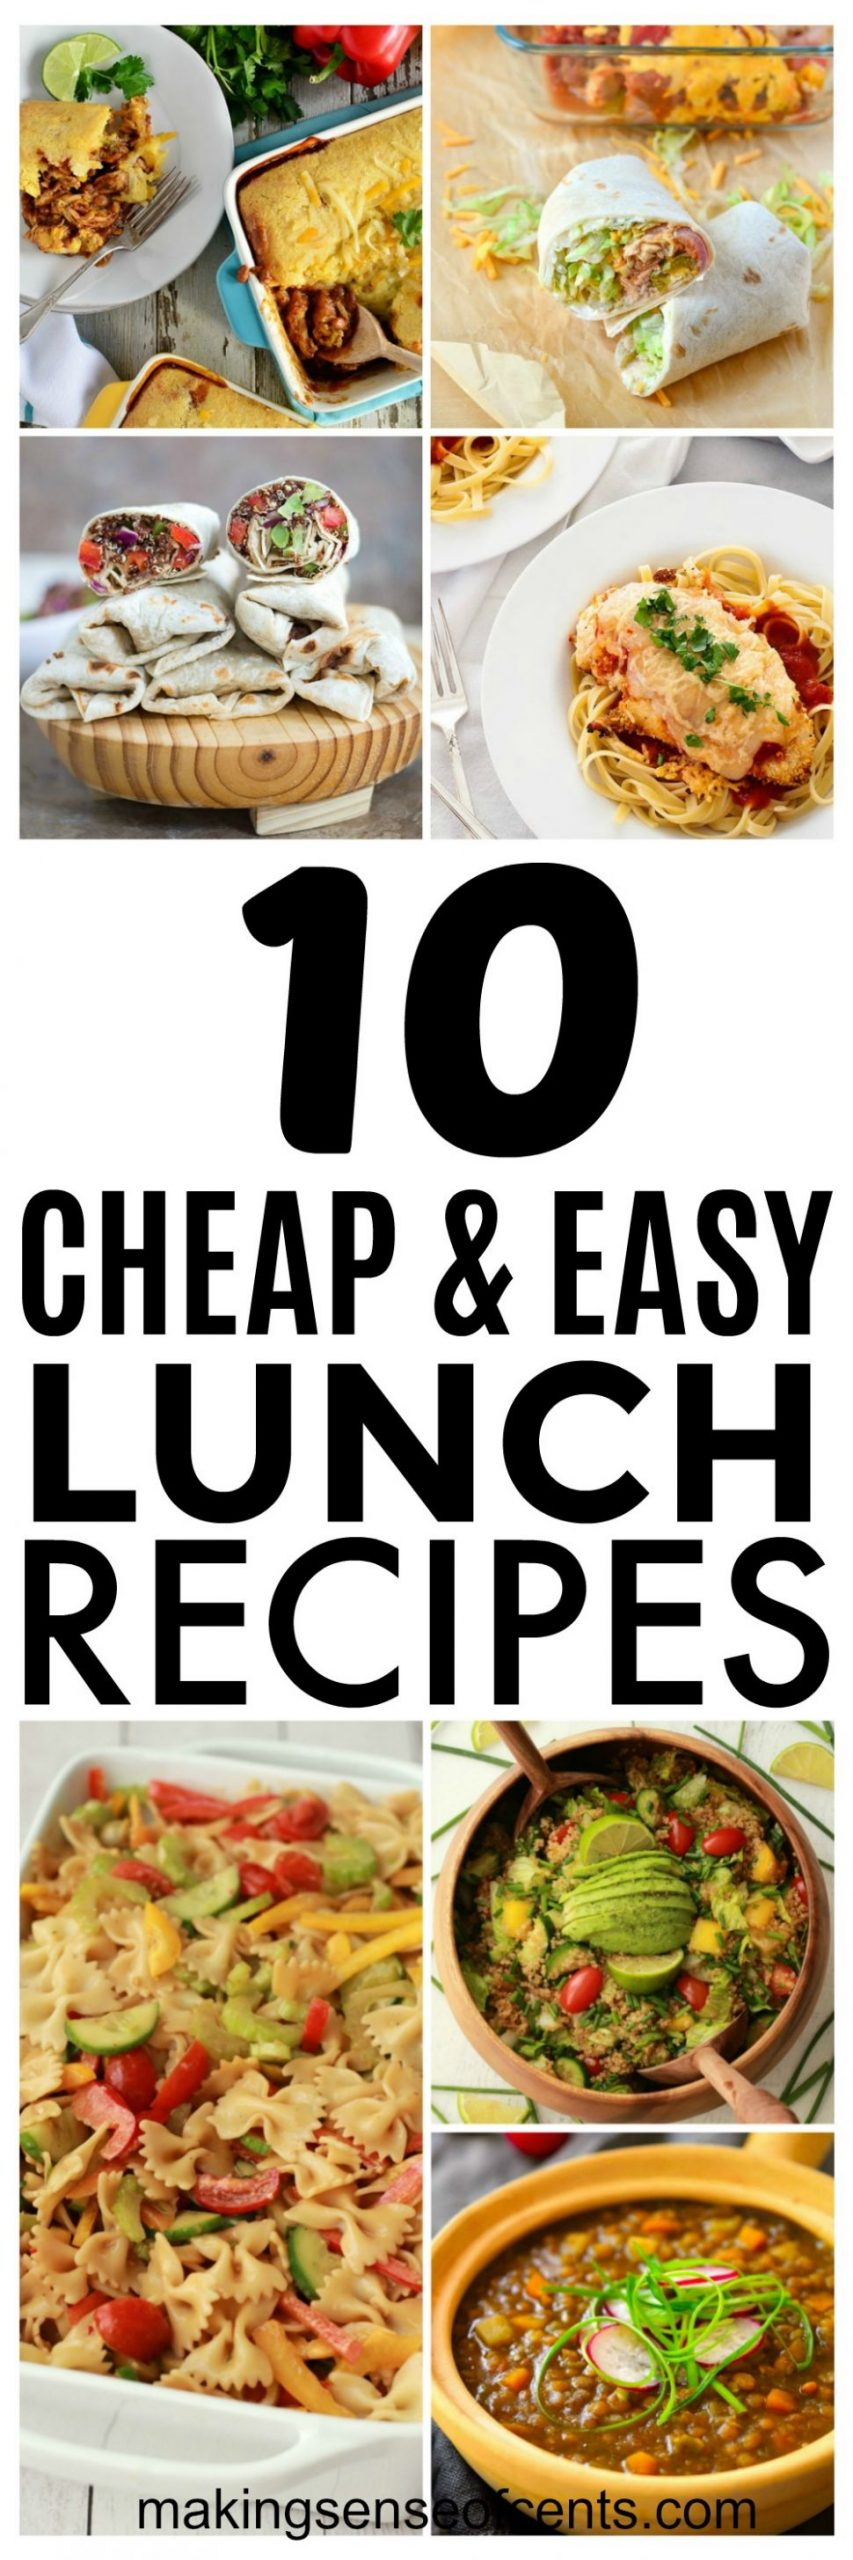 10 Budget Lunch Ideas and Cheap Easy Meals You Should Try - Sandwich Recipes Easy And Affordable